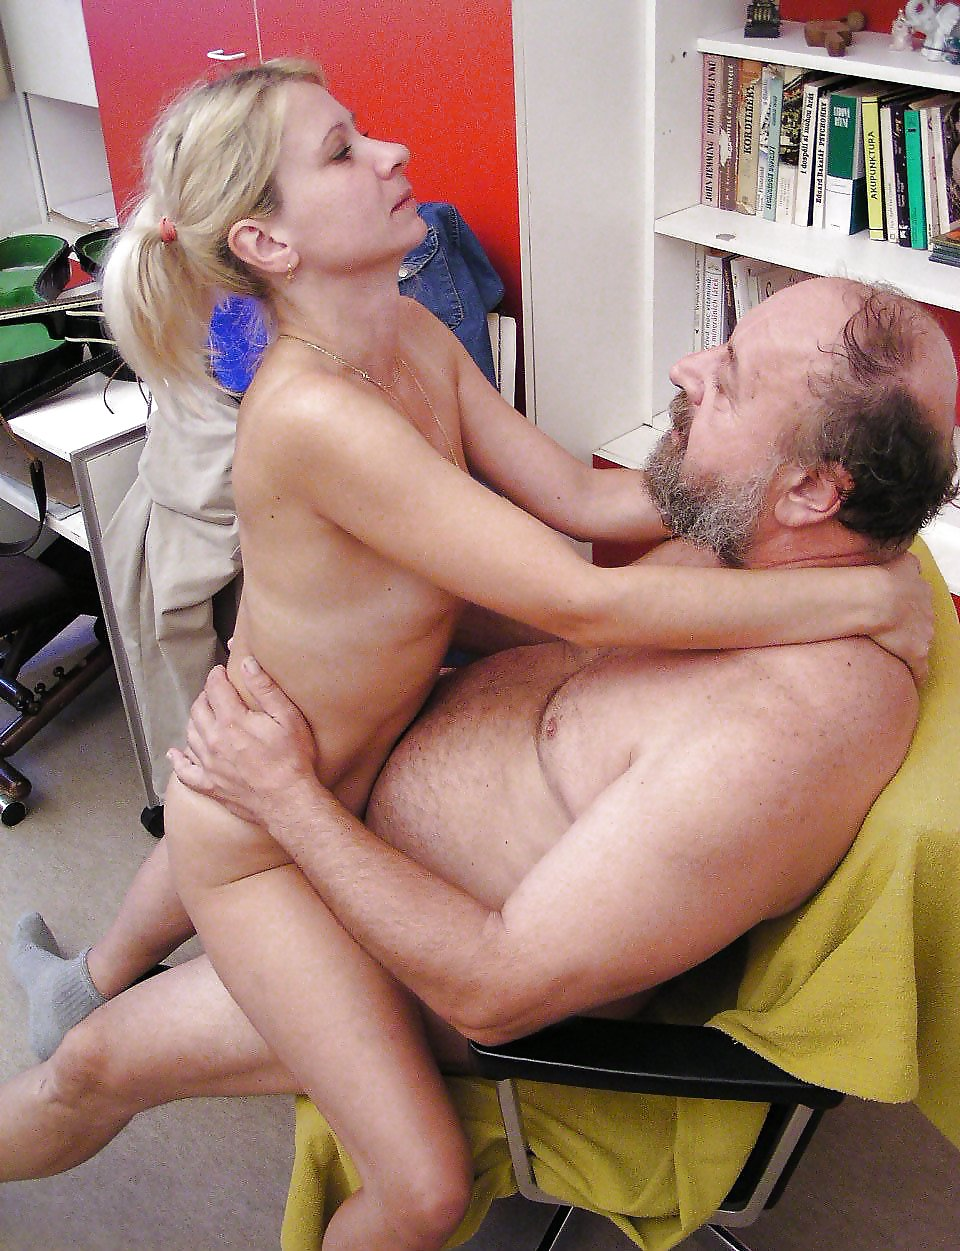 women-old-man-school-girl-xxx-nude-wife-pics-forum